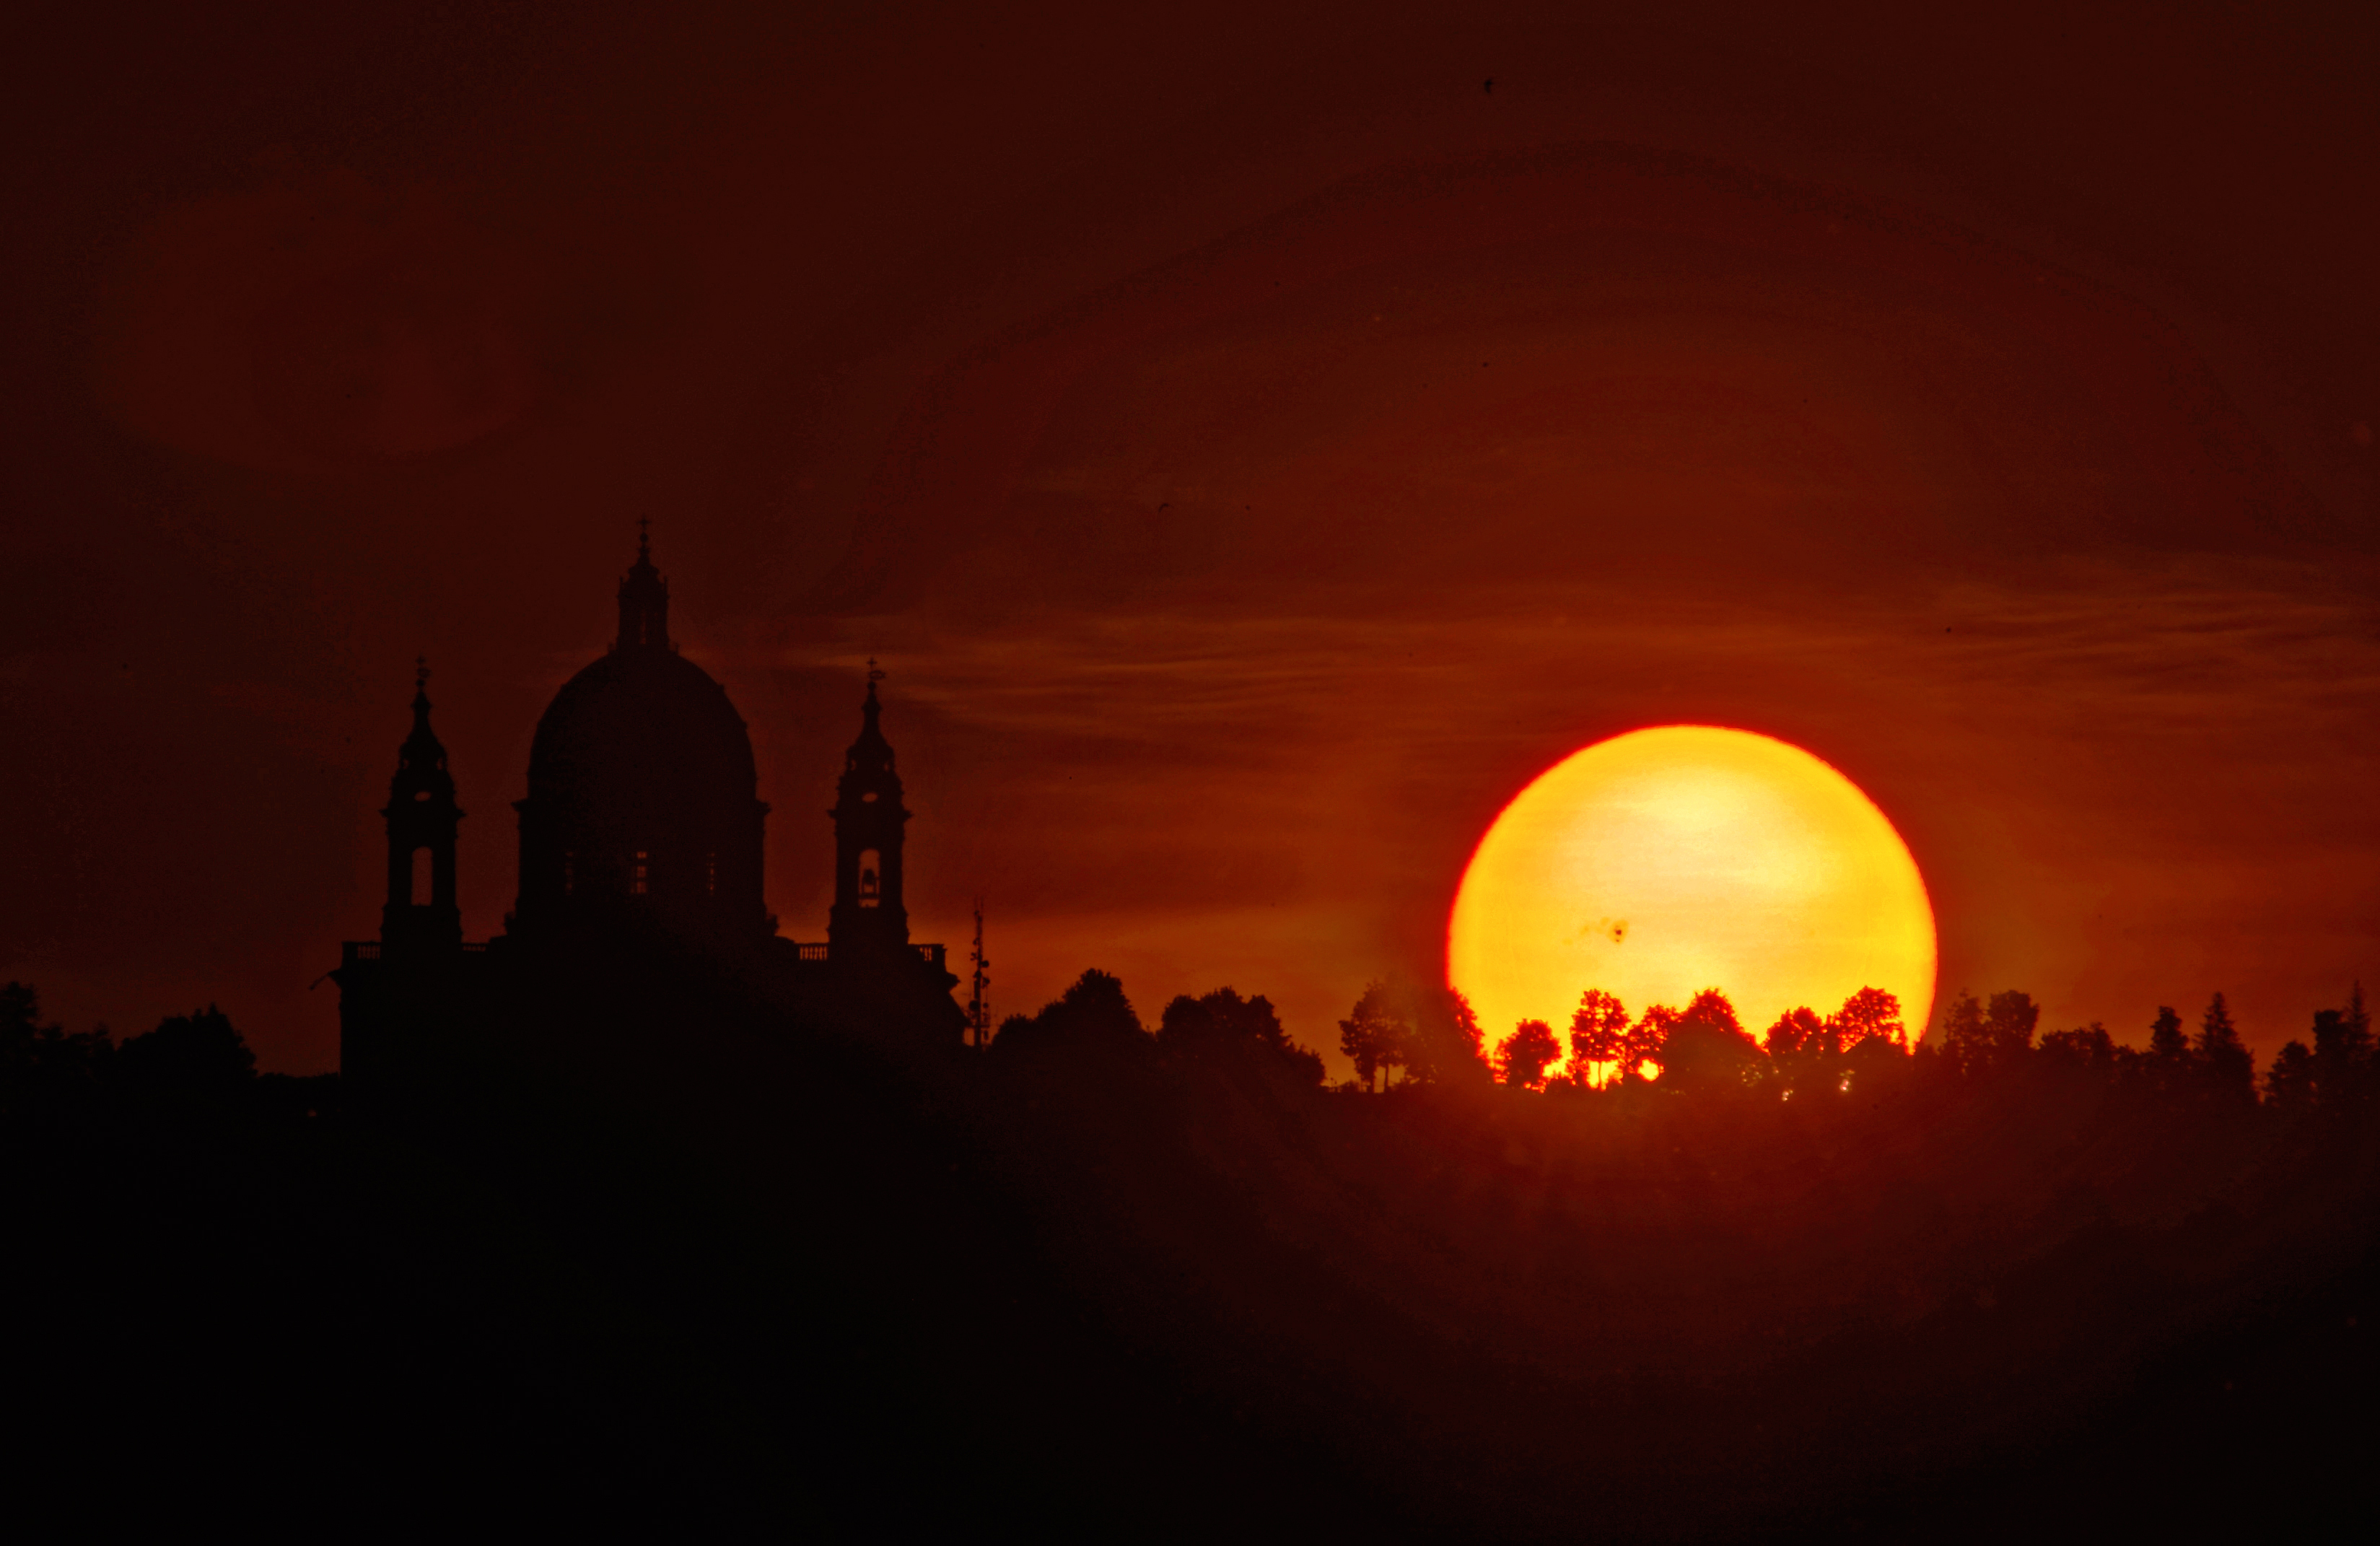 Majestic Sunspot Blesses Basilica at Sunrise in Spectacular Picture